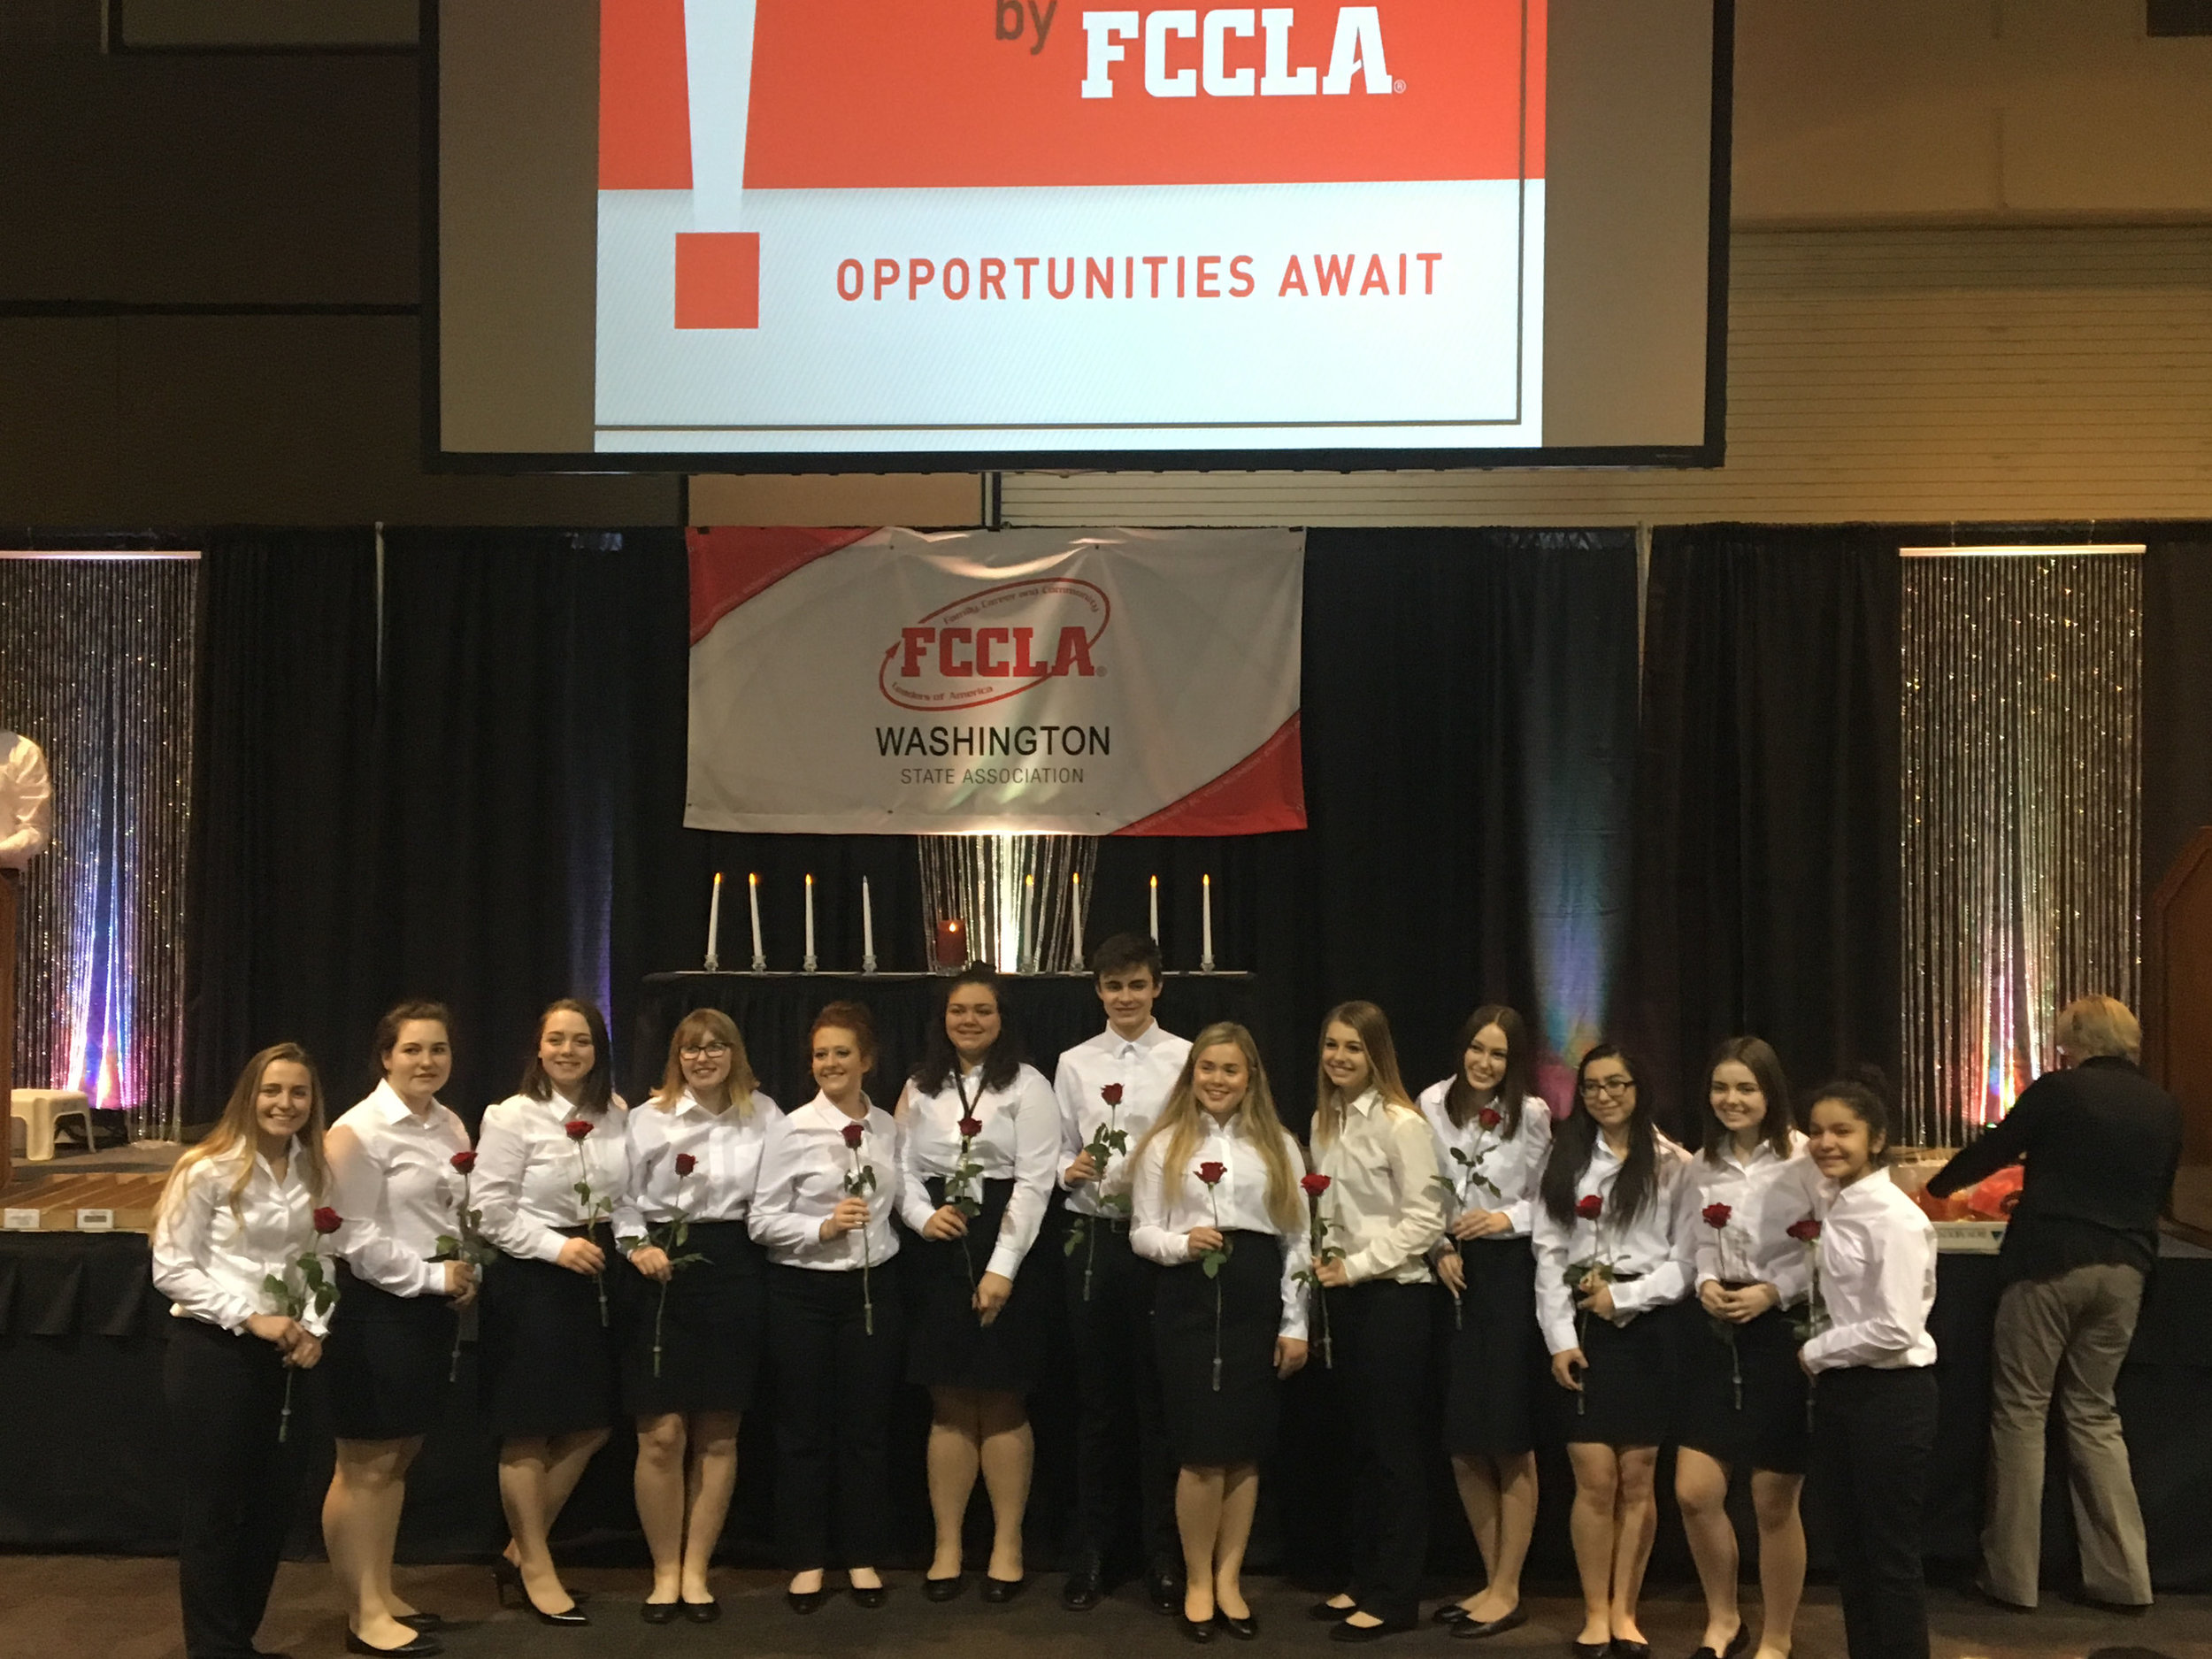 Liberty High Student, Nicole Winters, is installed as new Washington State FCCLA Vice President of Region 4